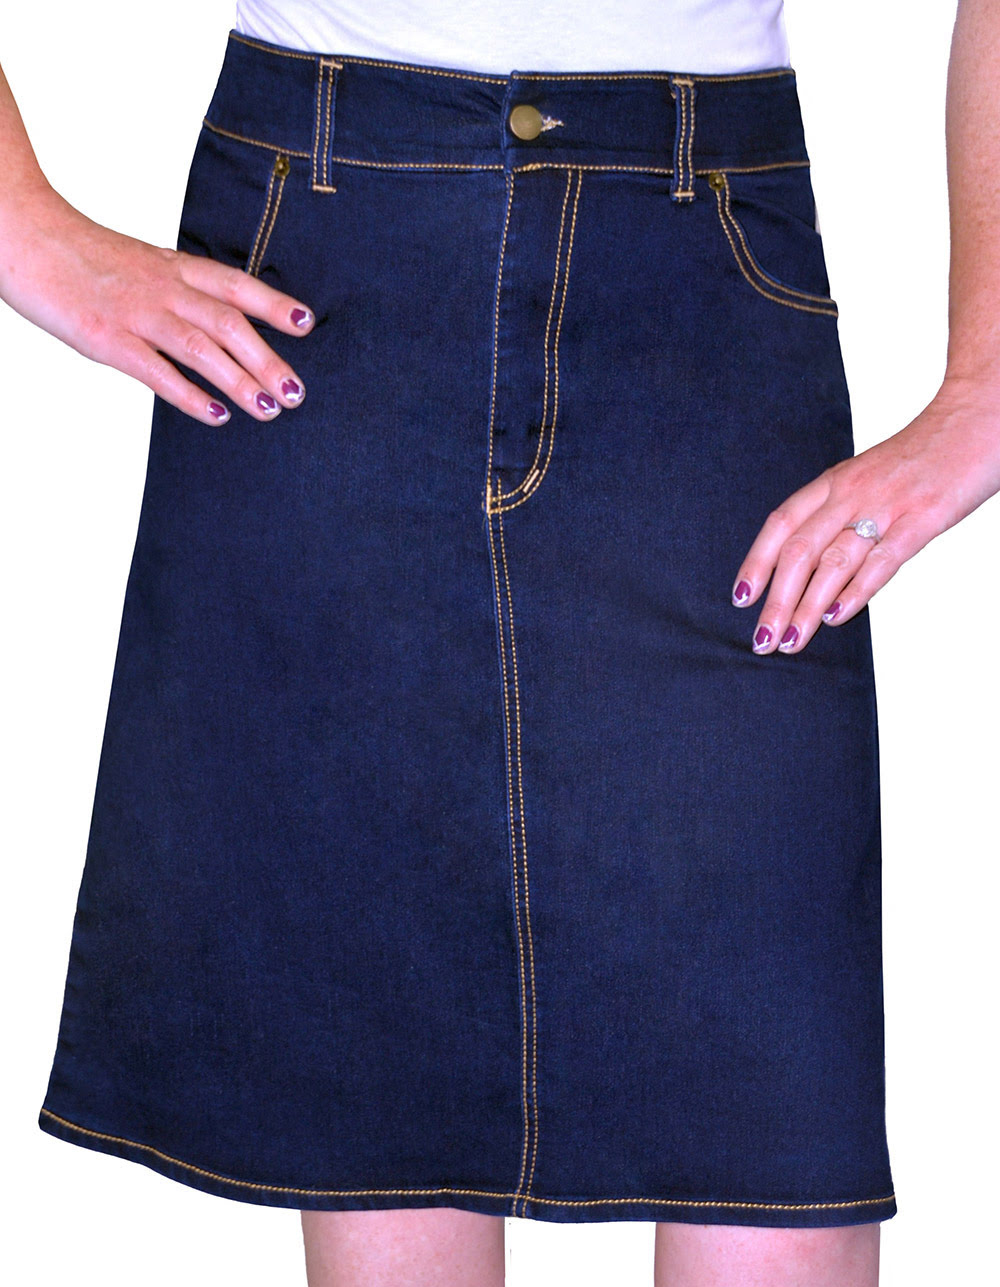 Modest Denim Skirts. Modern and Modest. Kosher Casual